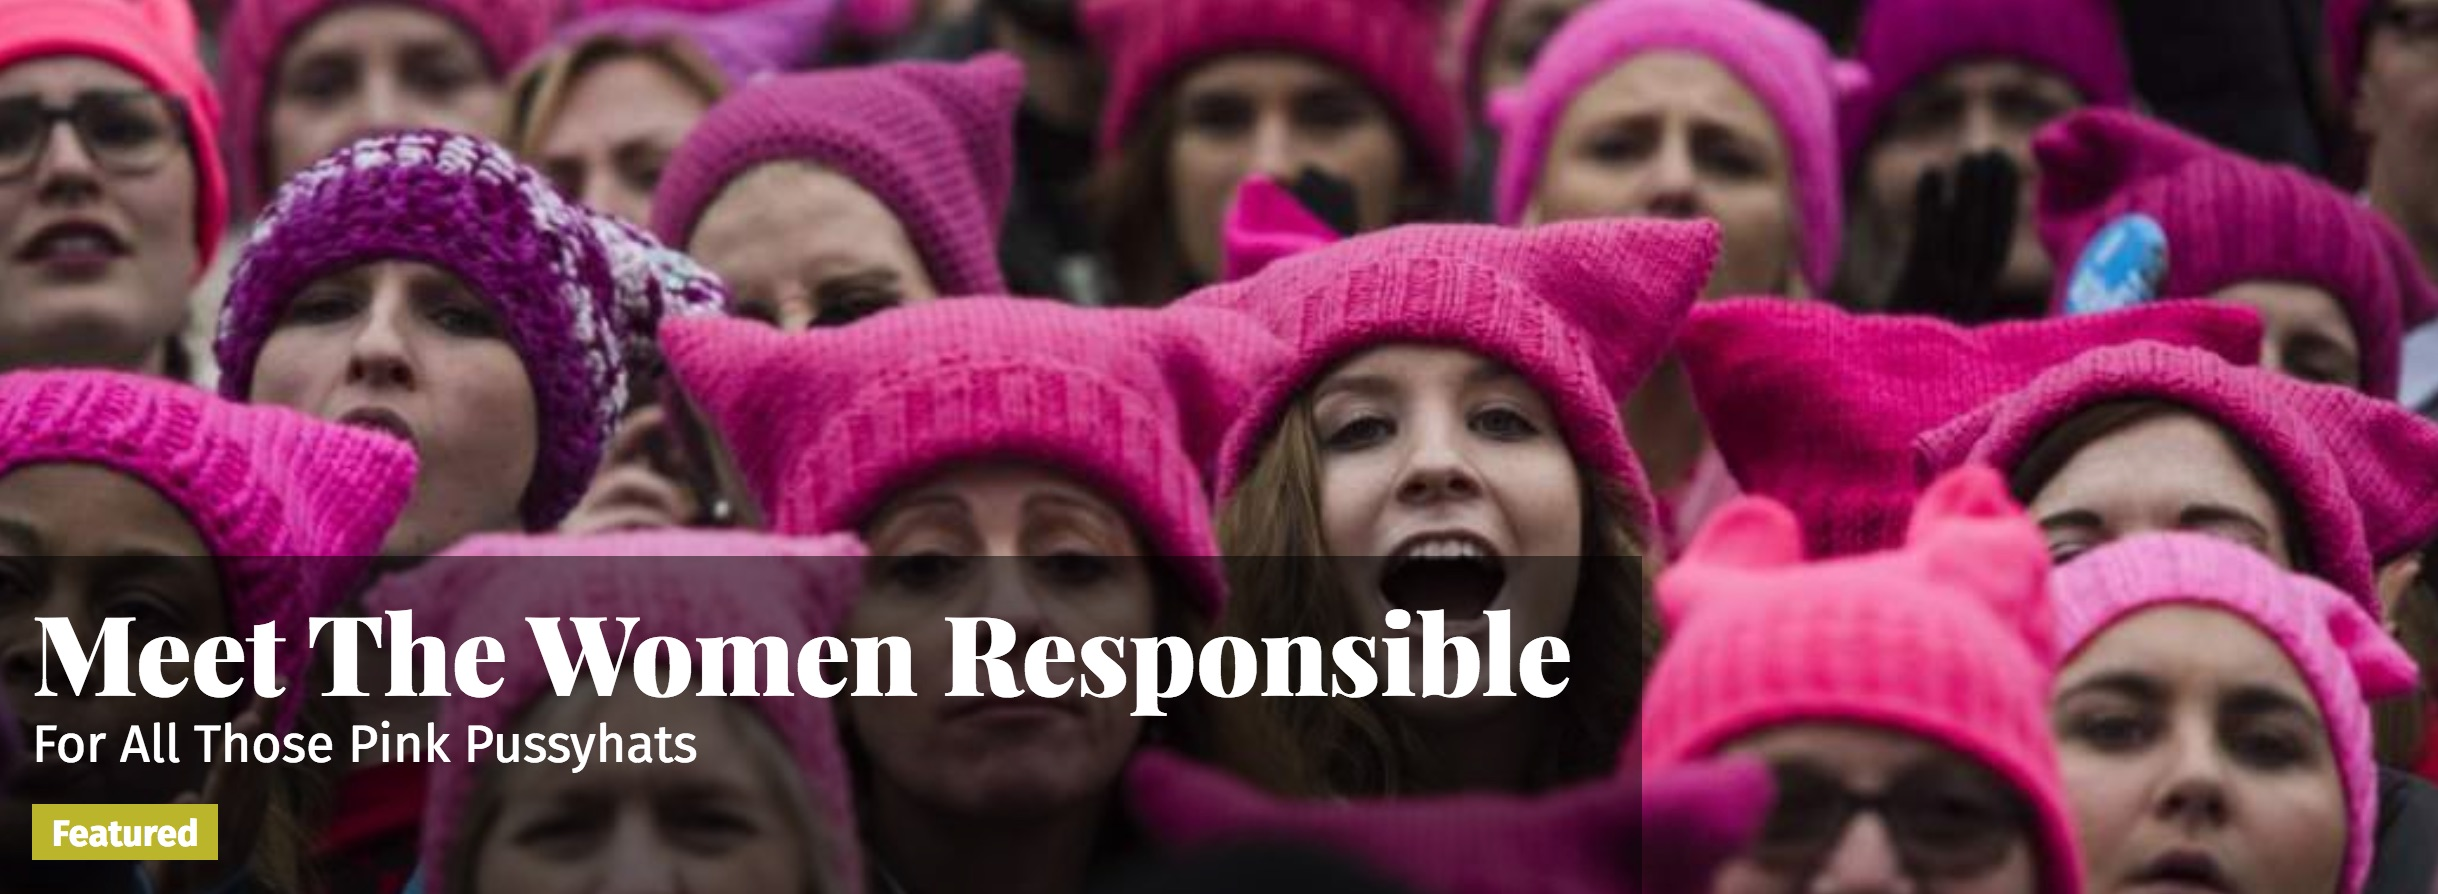 Meet The Women Responsible For All Those Pink Pussyhats